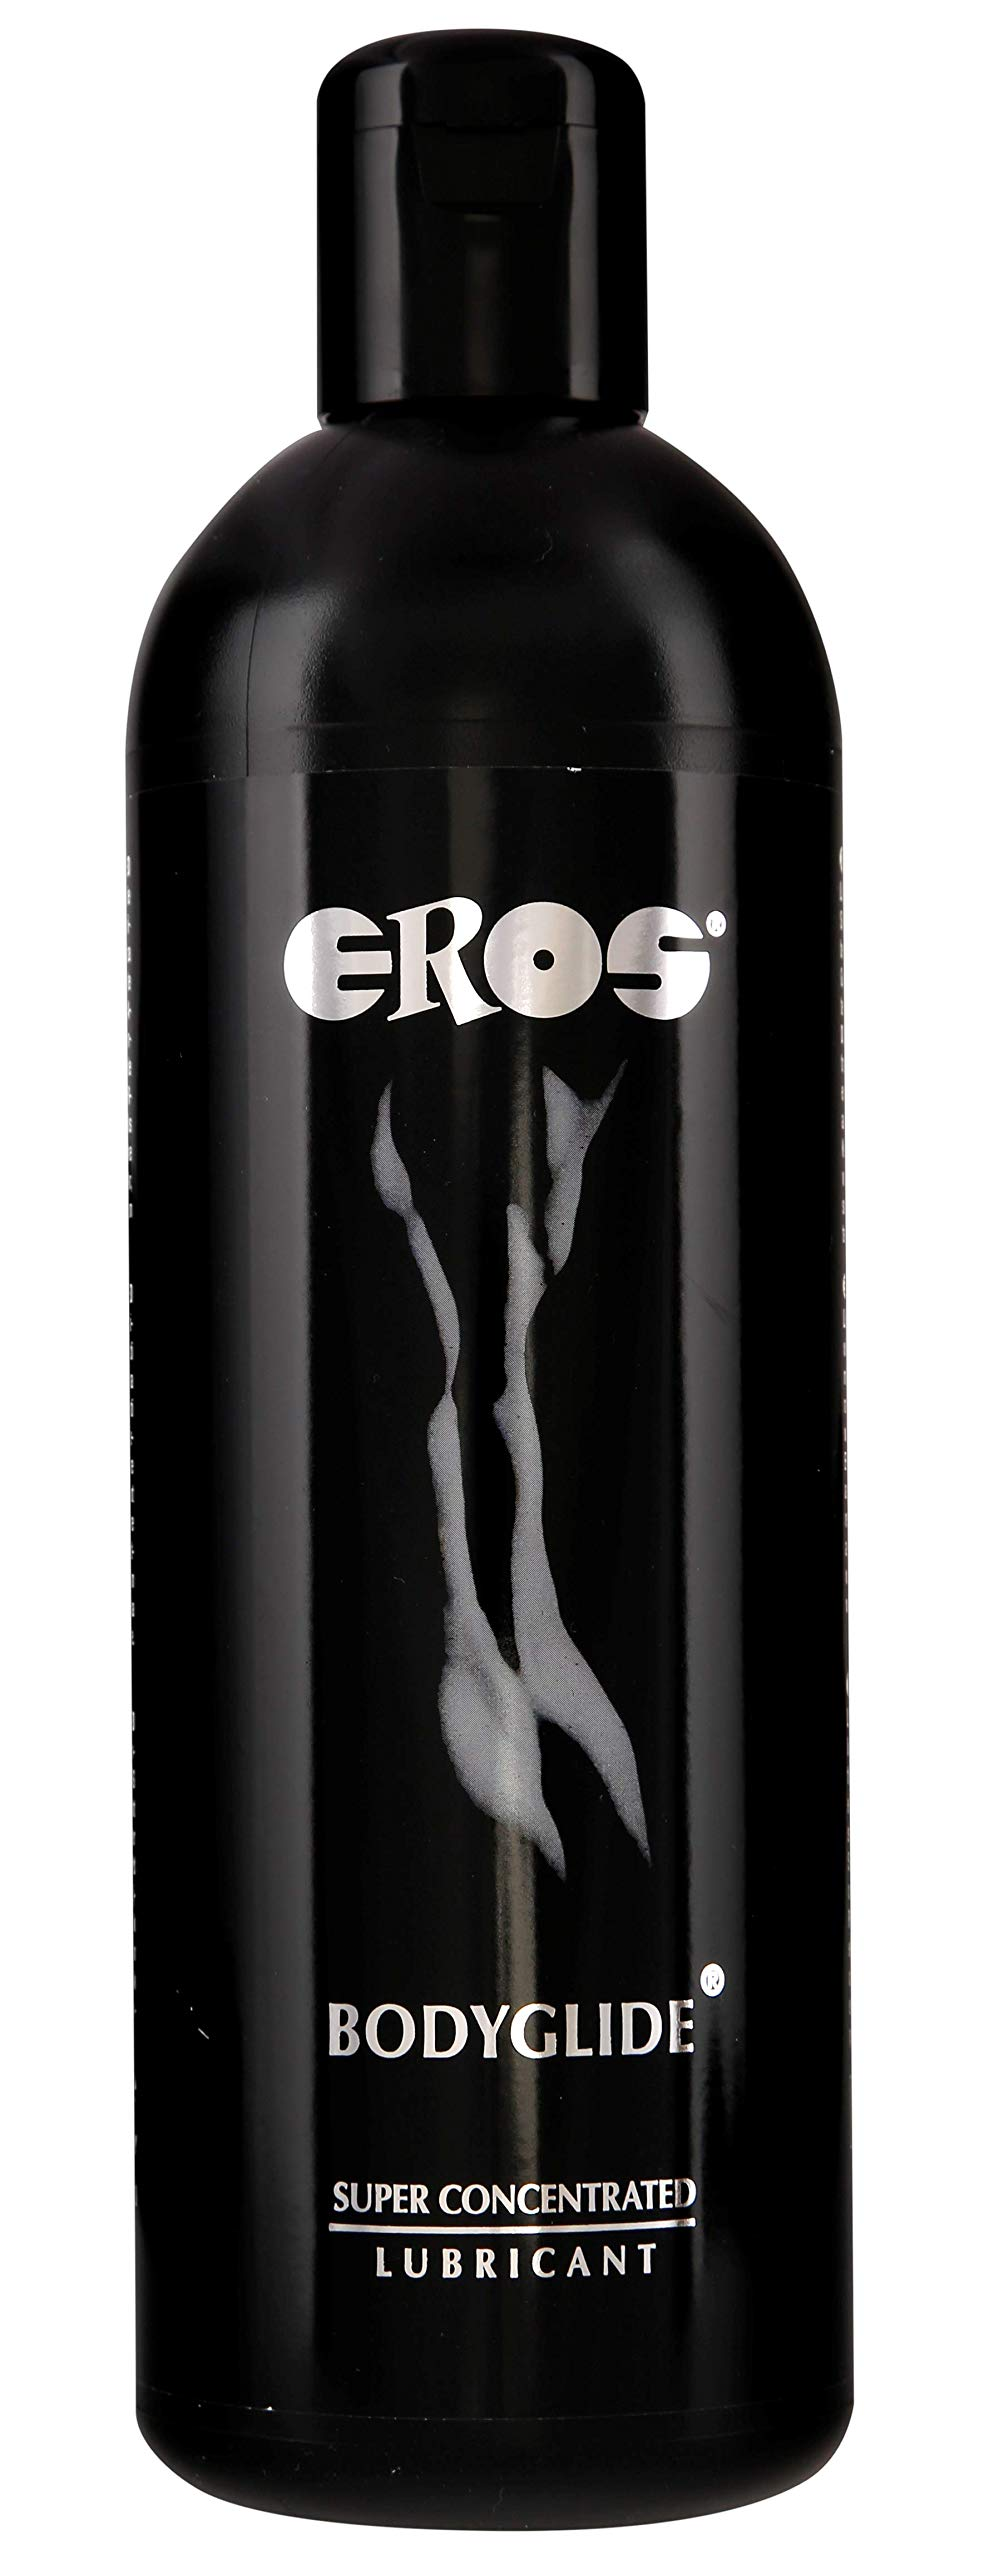 Megasol EROS Bodyglide Super Concentrated Body Gel - Silicon Based Personal Lubricant. Latex Condom Safe, Ultra Long-Lasting Sex Lube Without Parabens or Glycerin ~ 1000 mL